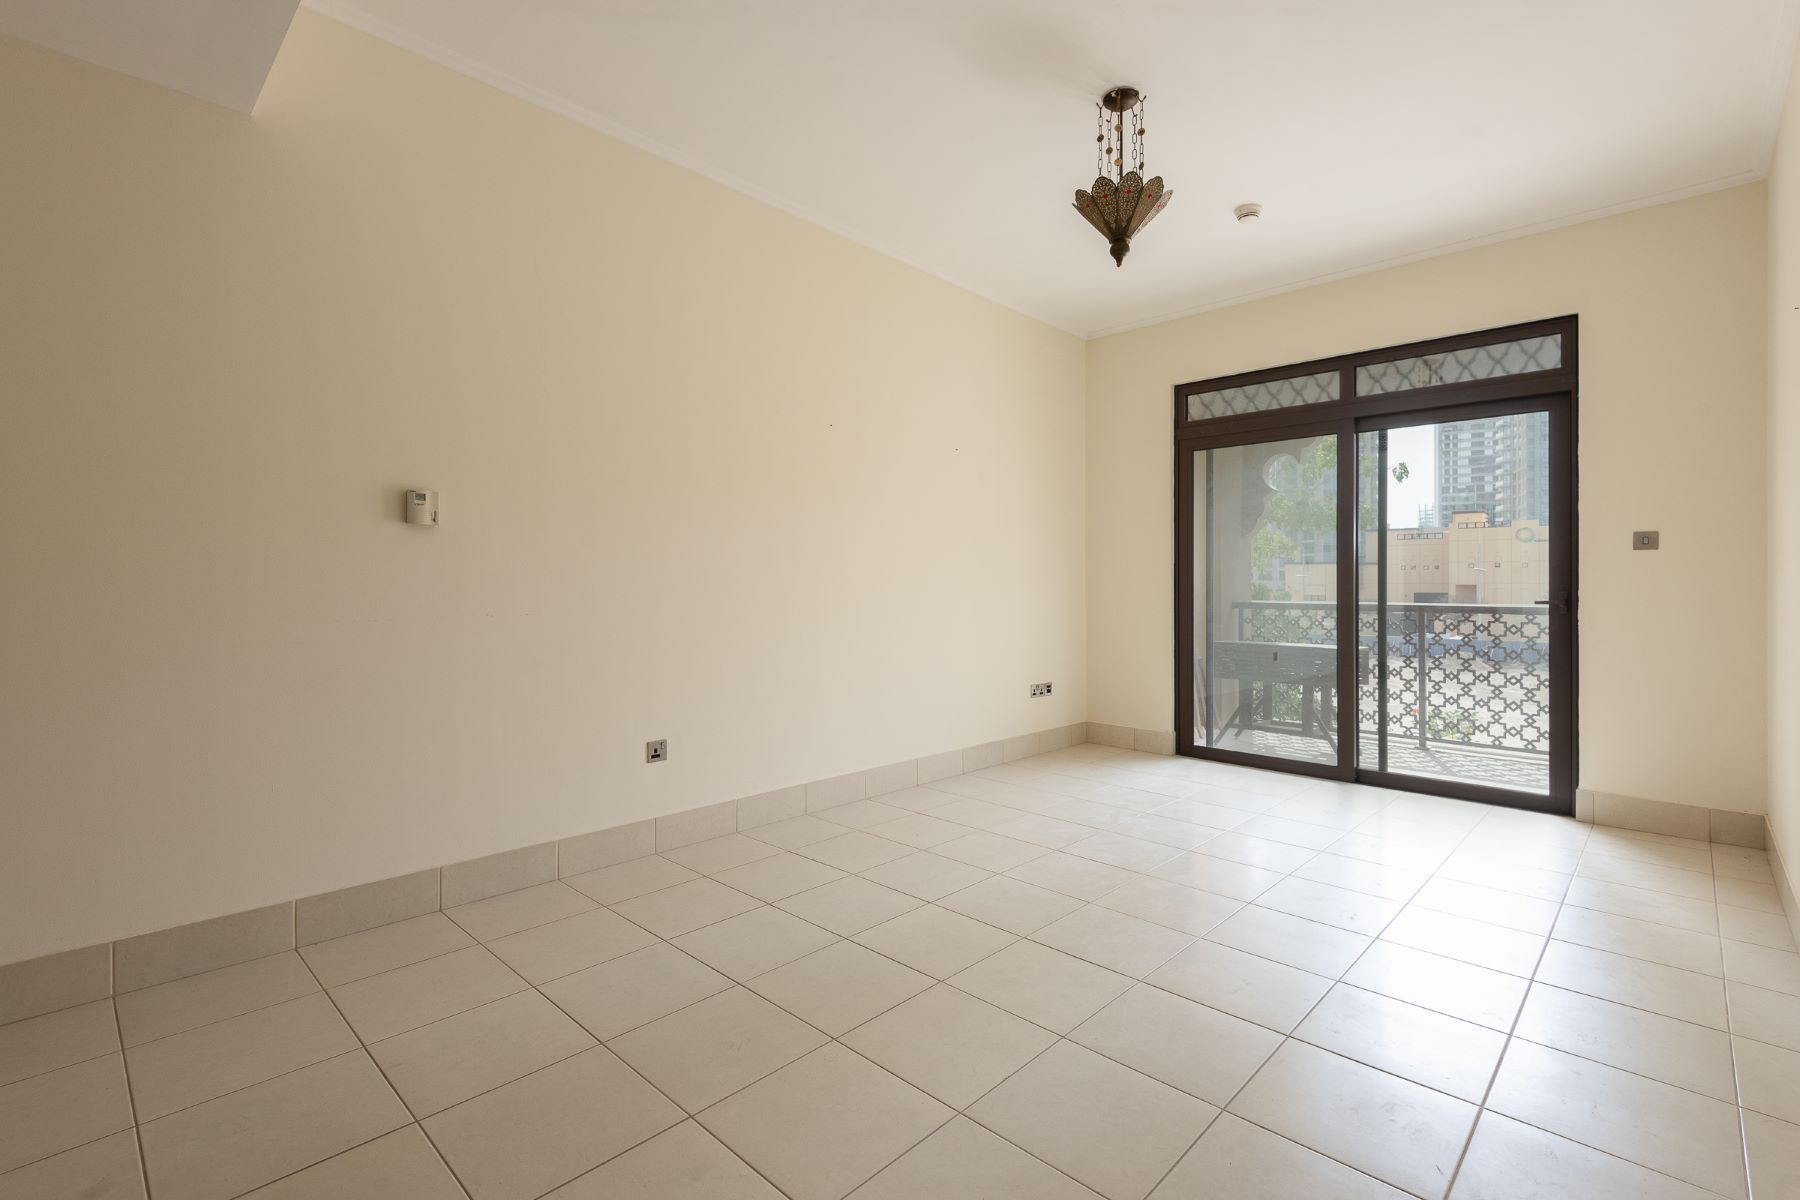 Apartments for Sale at Well Priced One Bedroom Vacant Yansoon. Dubai, Dubai United Arab Emirates